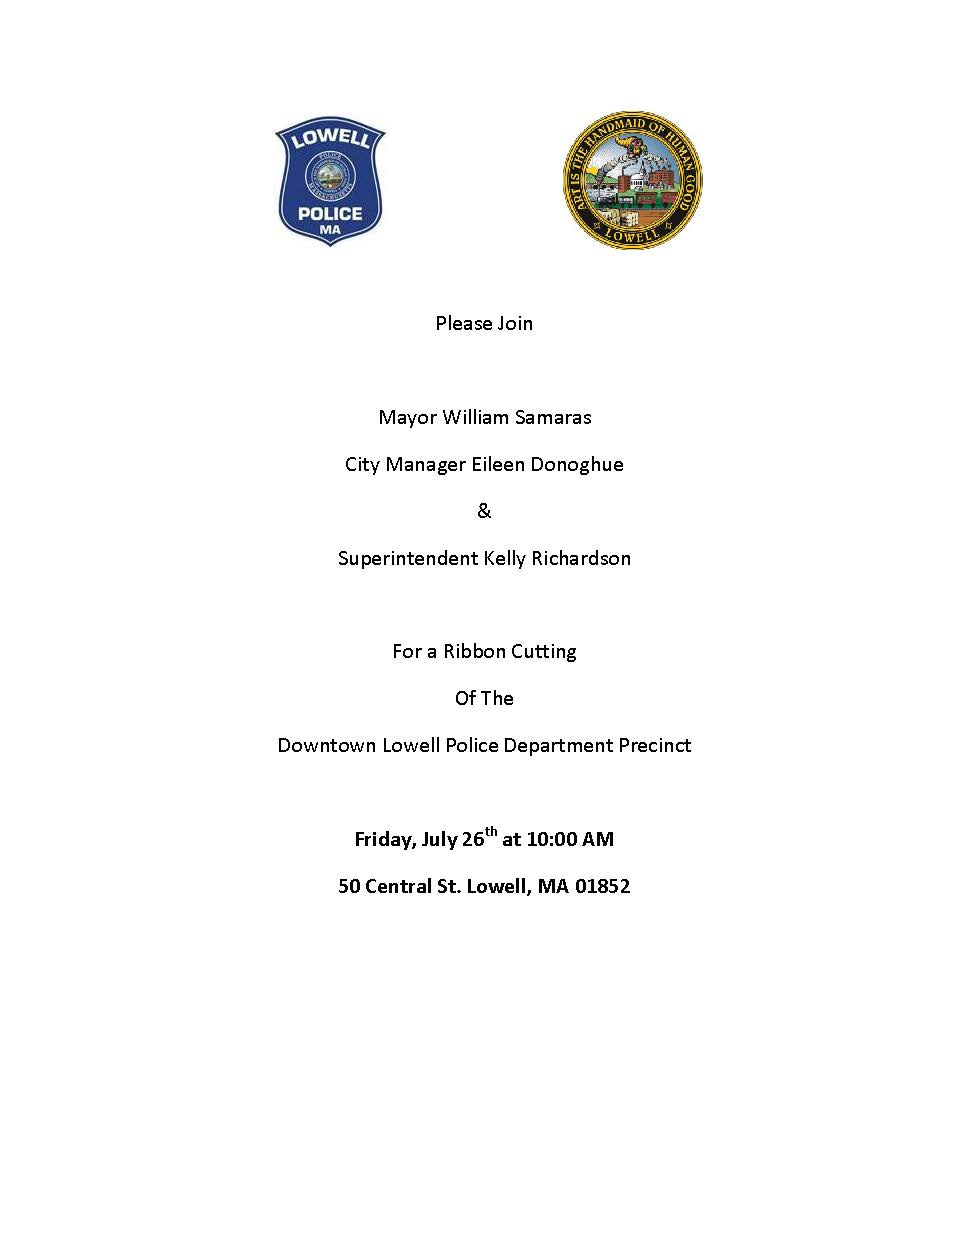 LPD Downtown Precinct Ribbon Cutting Final (3)